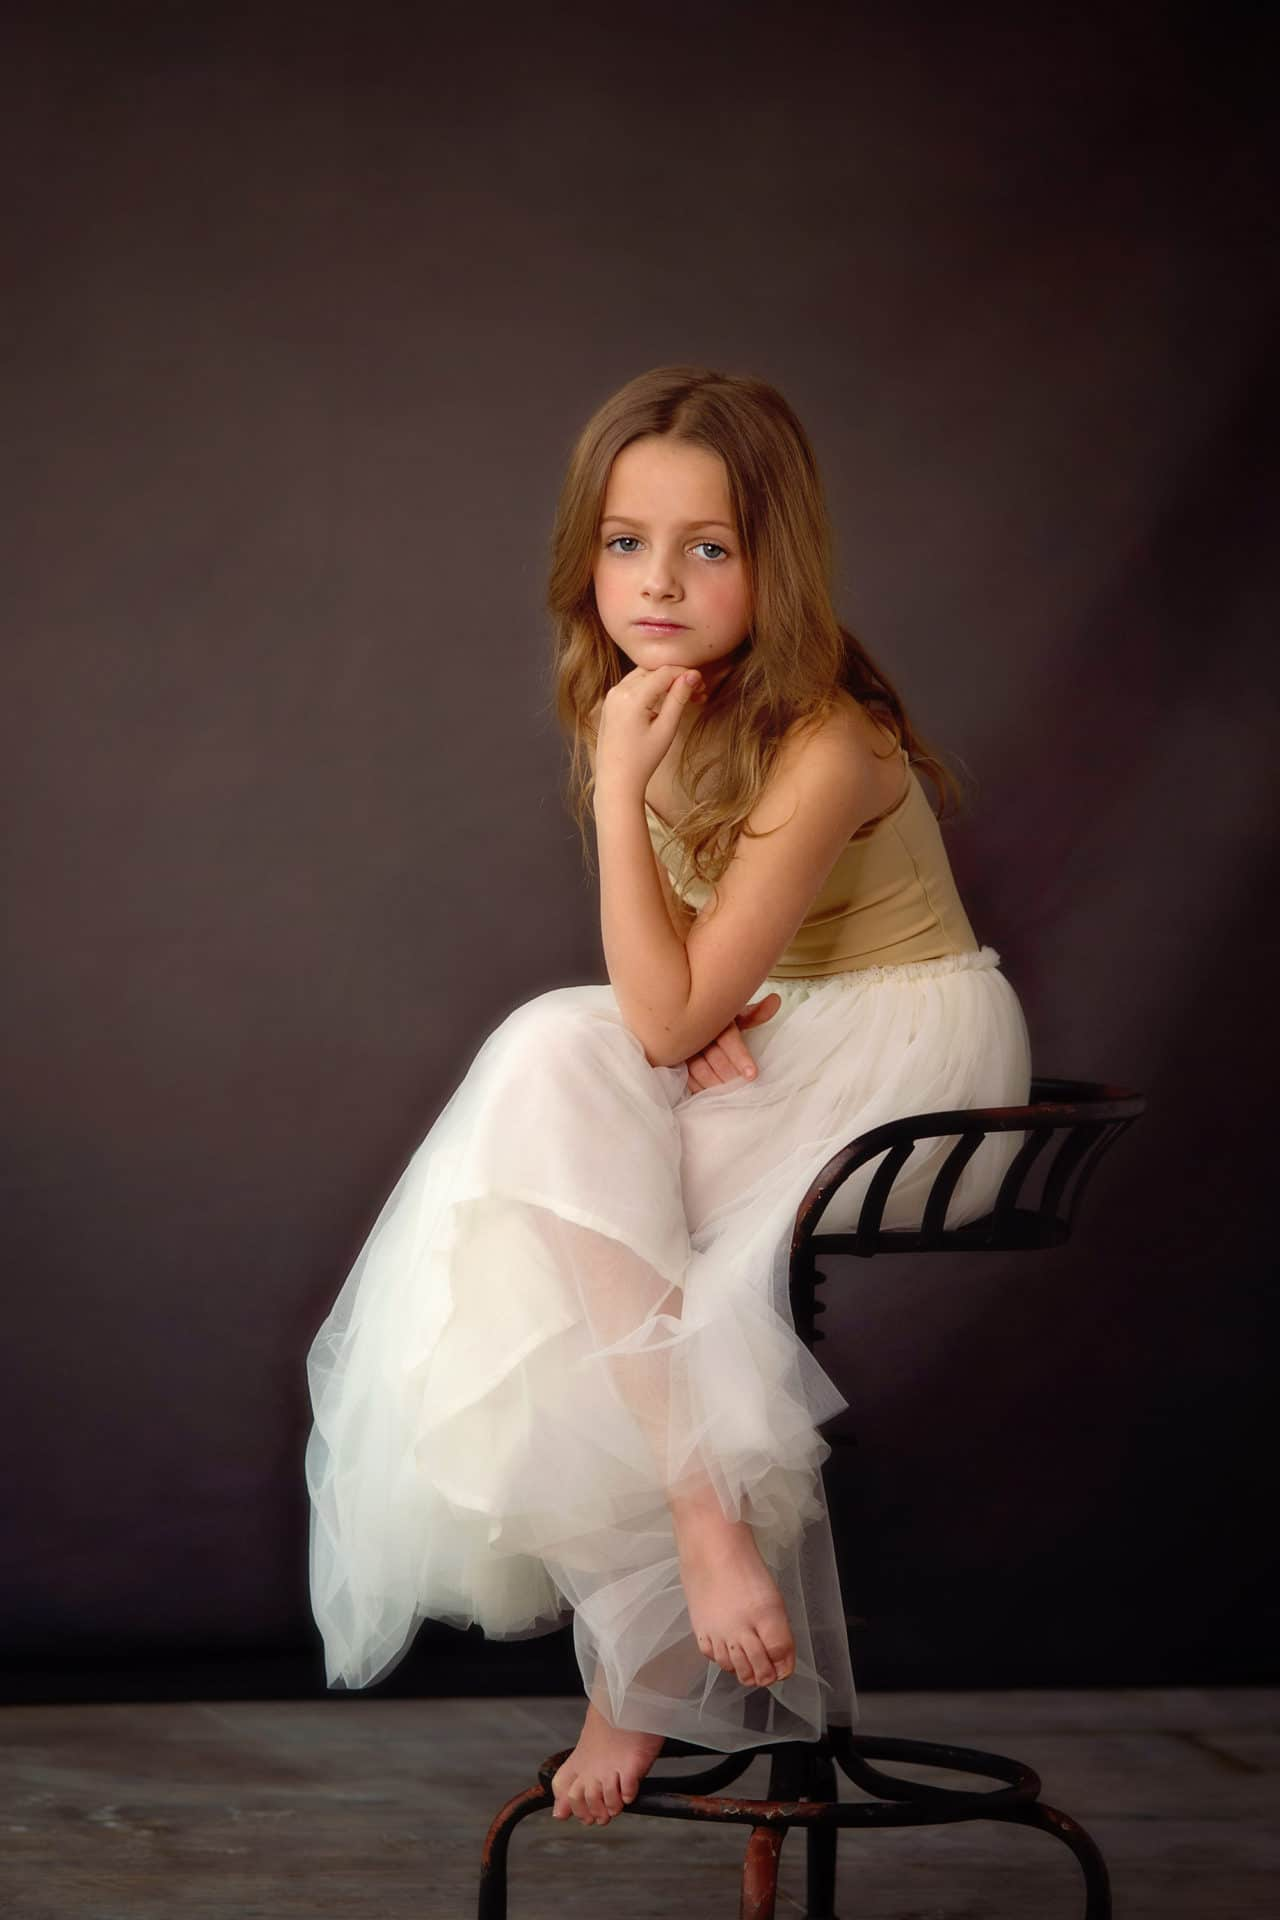 roswell portrait studio, child photography, fine art portraits